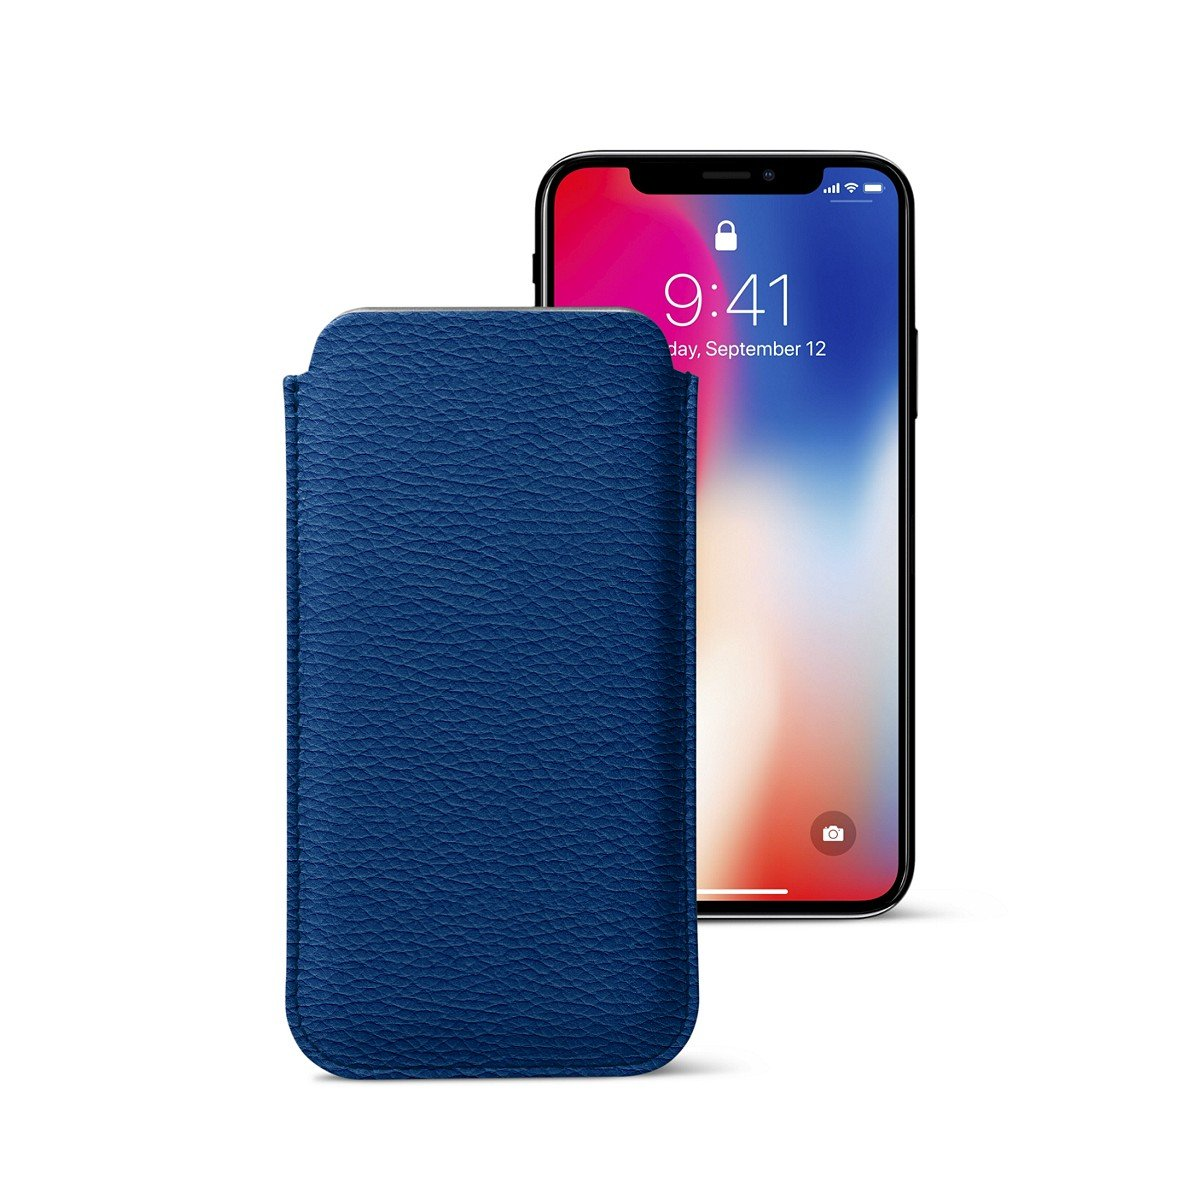 Lucrin - Classic Case for iPhone X - Royal Blue - Granulated Leather